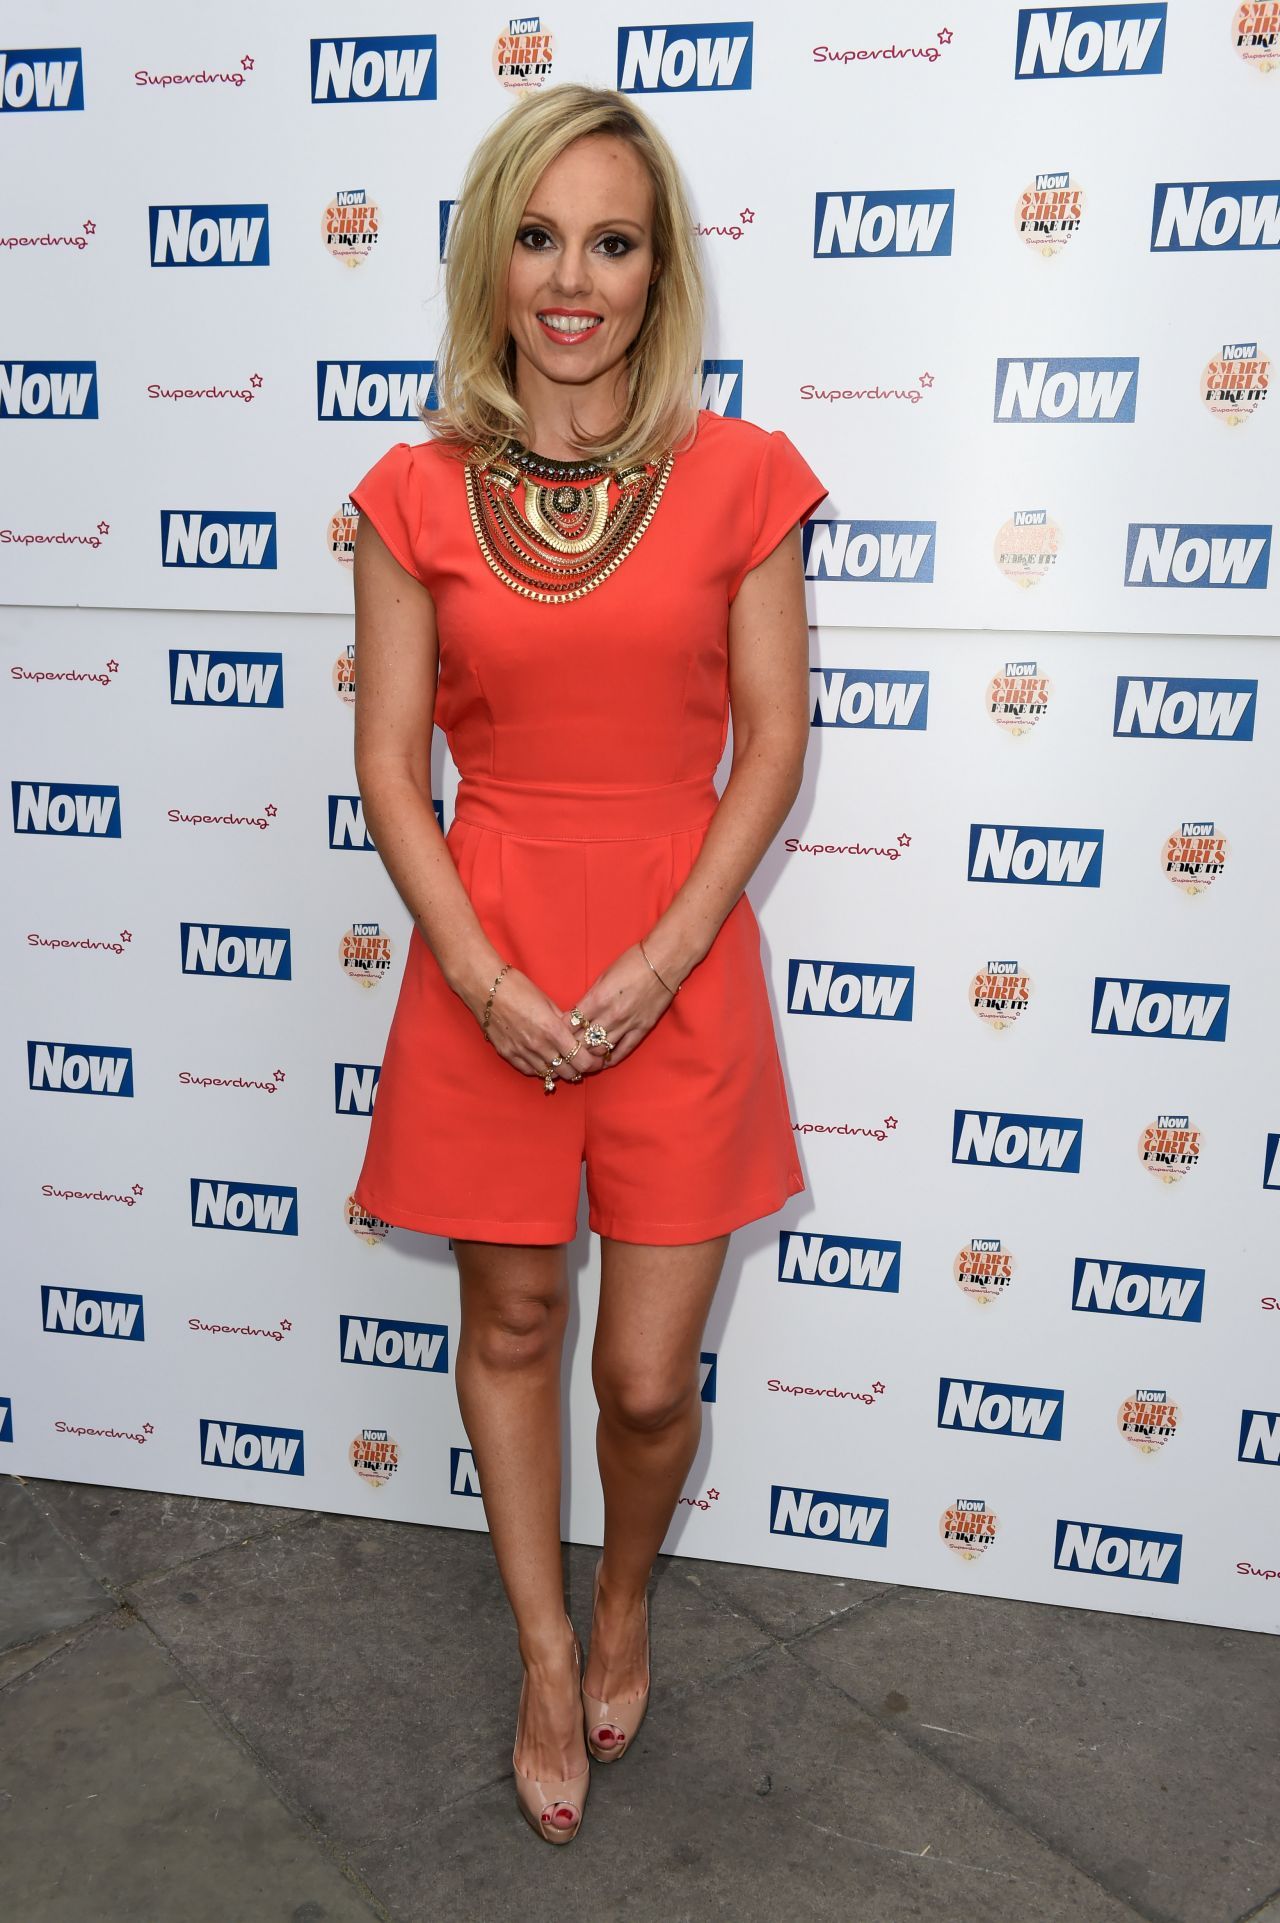 Michelle Dewberry Now Smart Girls Fake It With